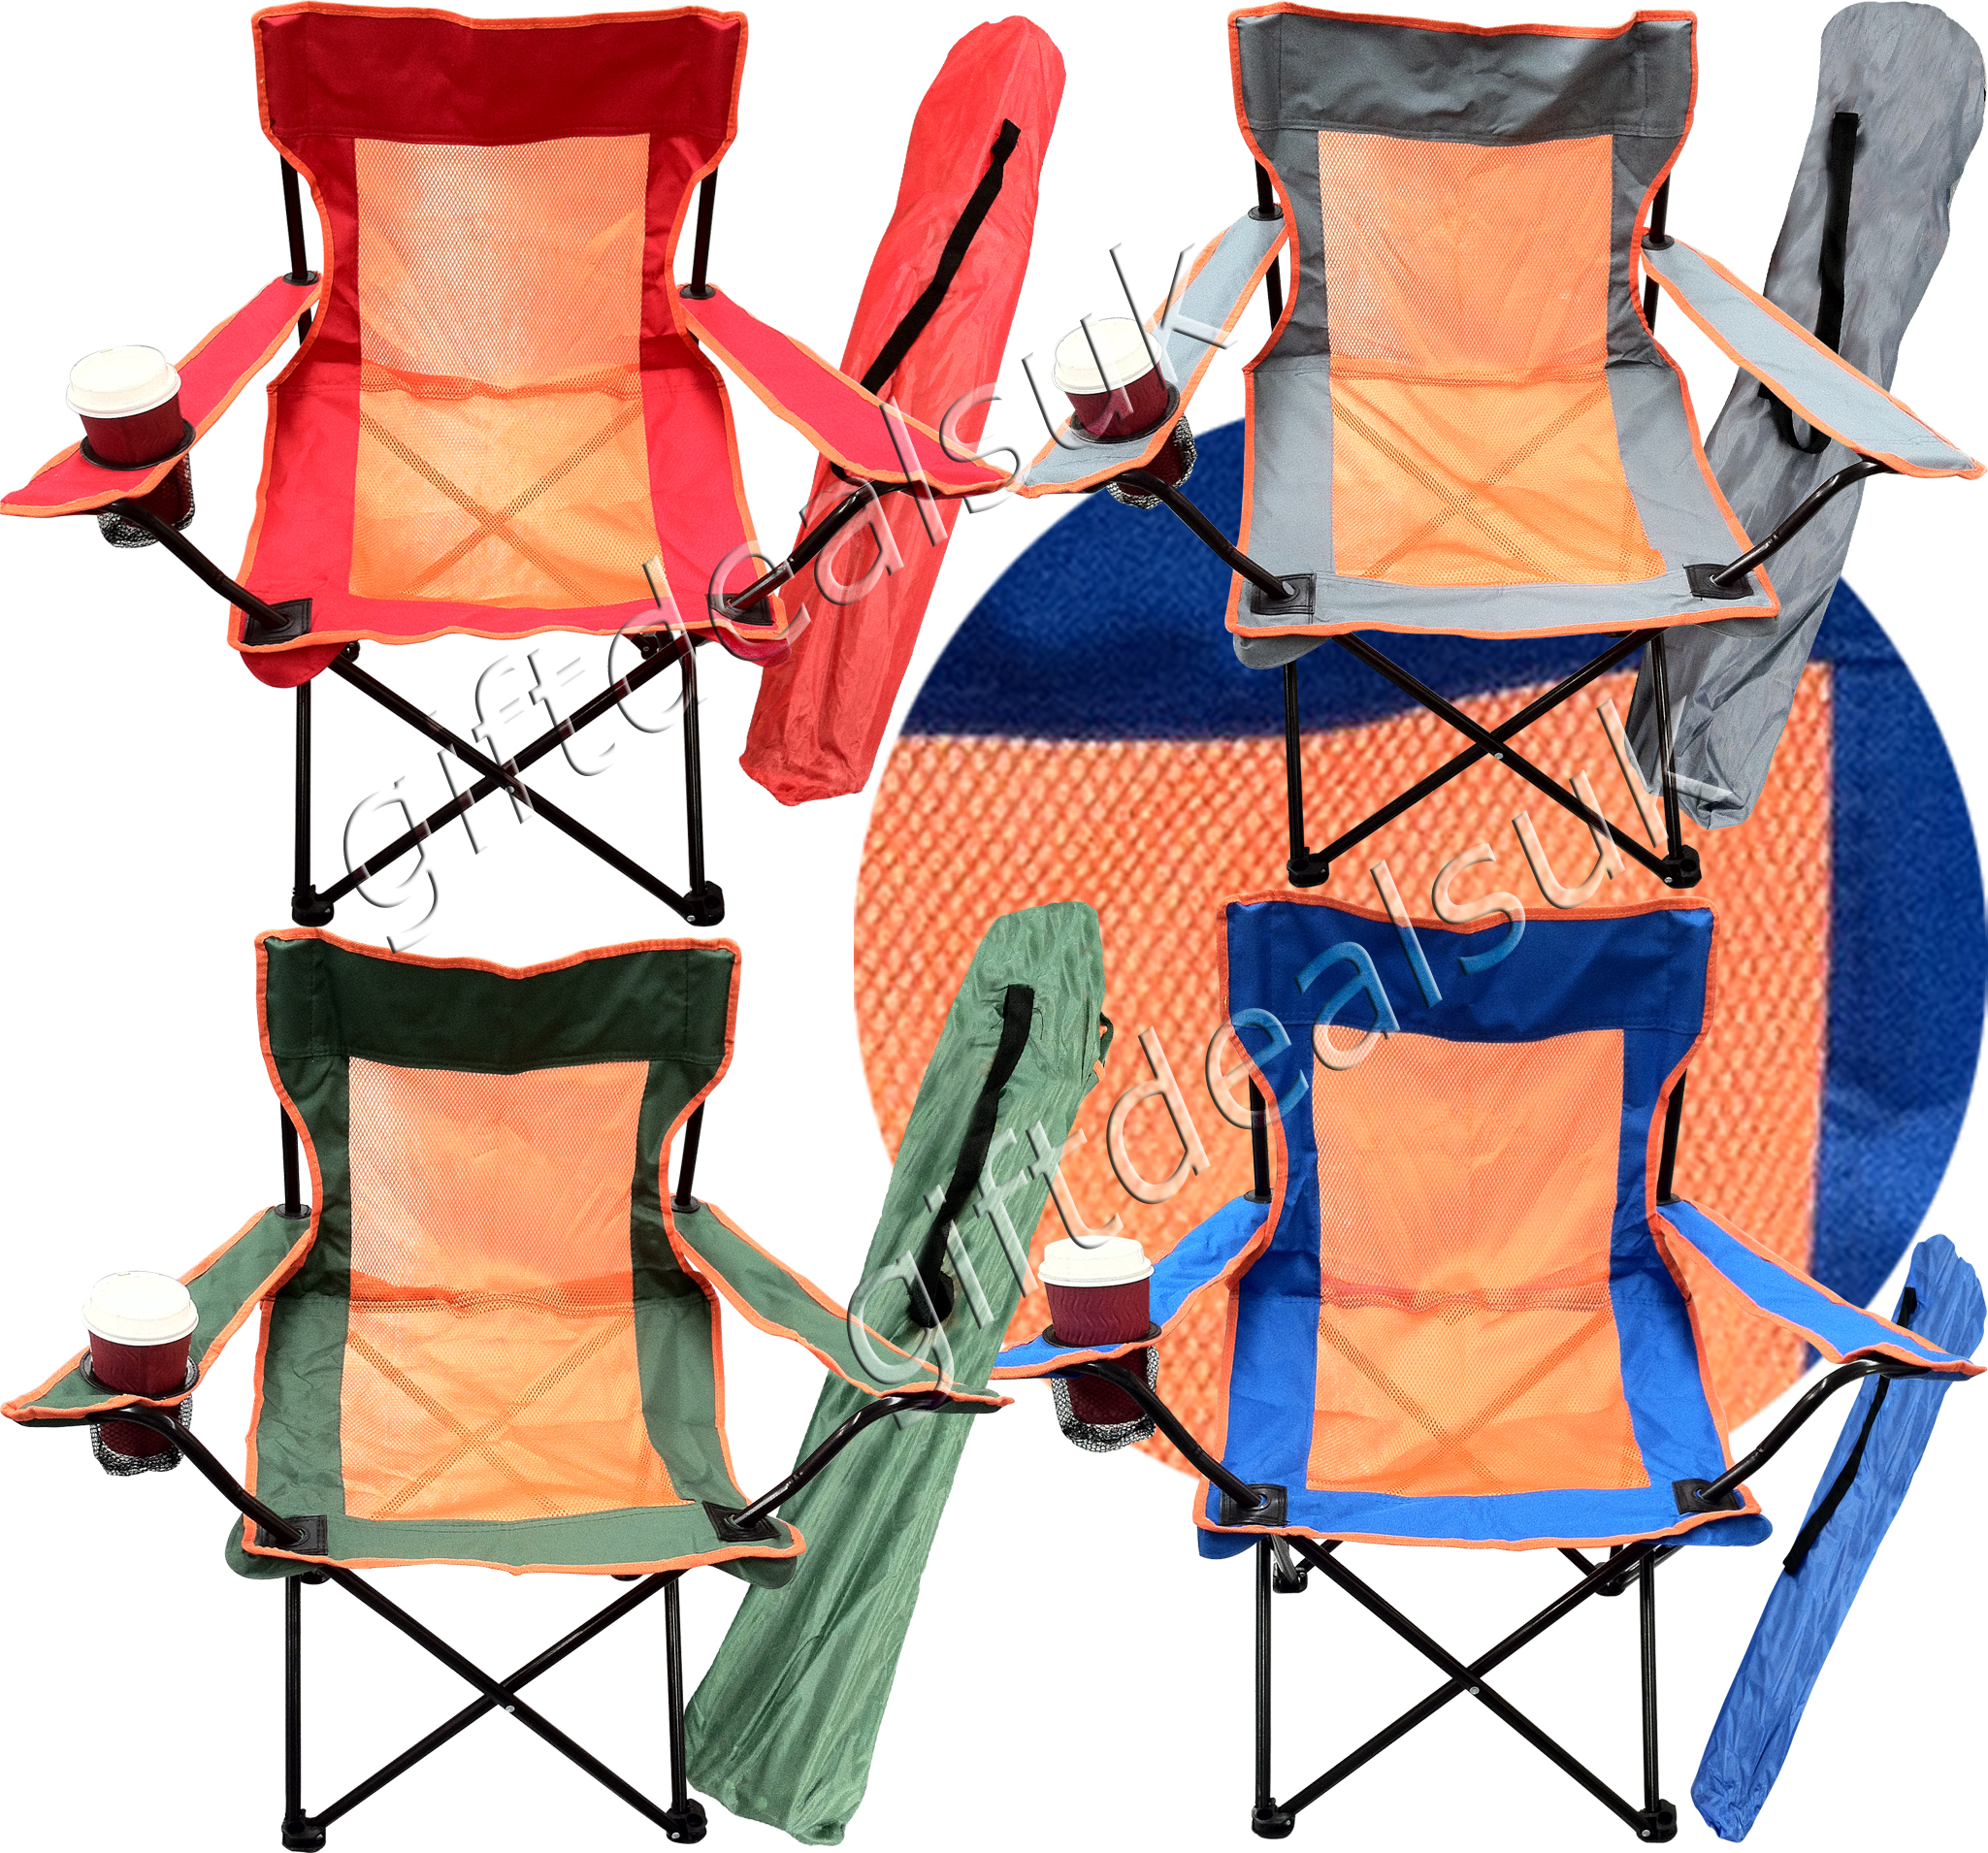 PORTABLE FOLDING CAMPING DIRECTORS CHAIR CUP HOLDER 4 COLOUR HEAVY DUTY CHAIRES